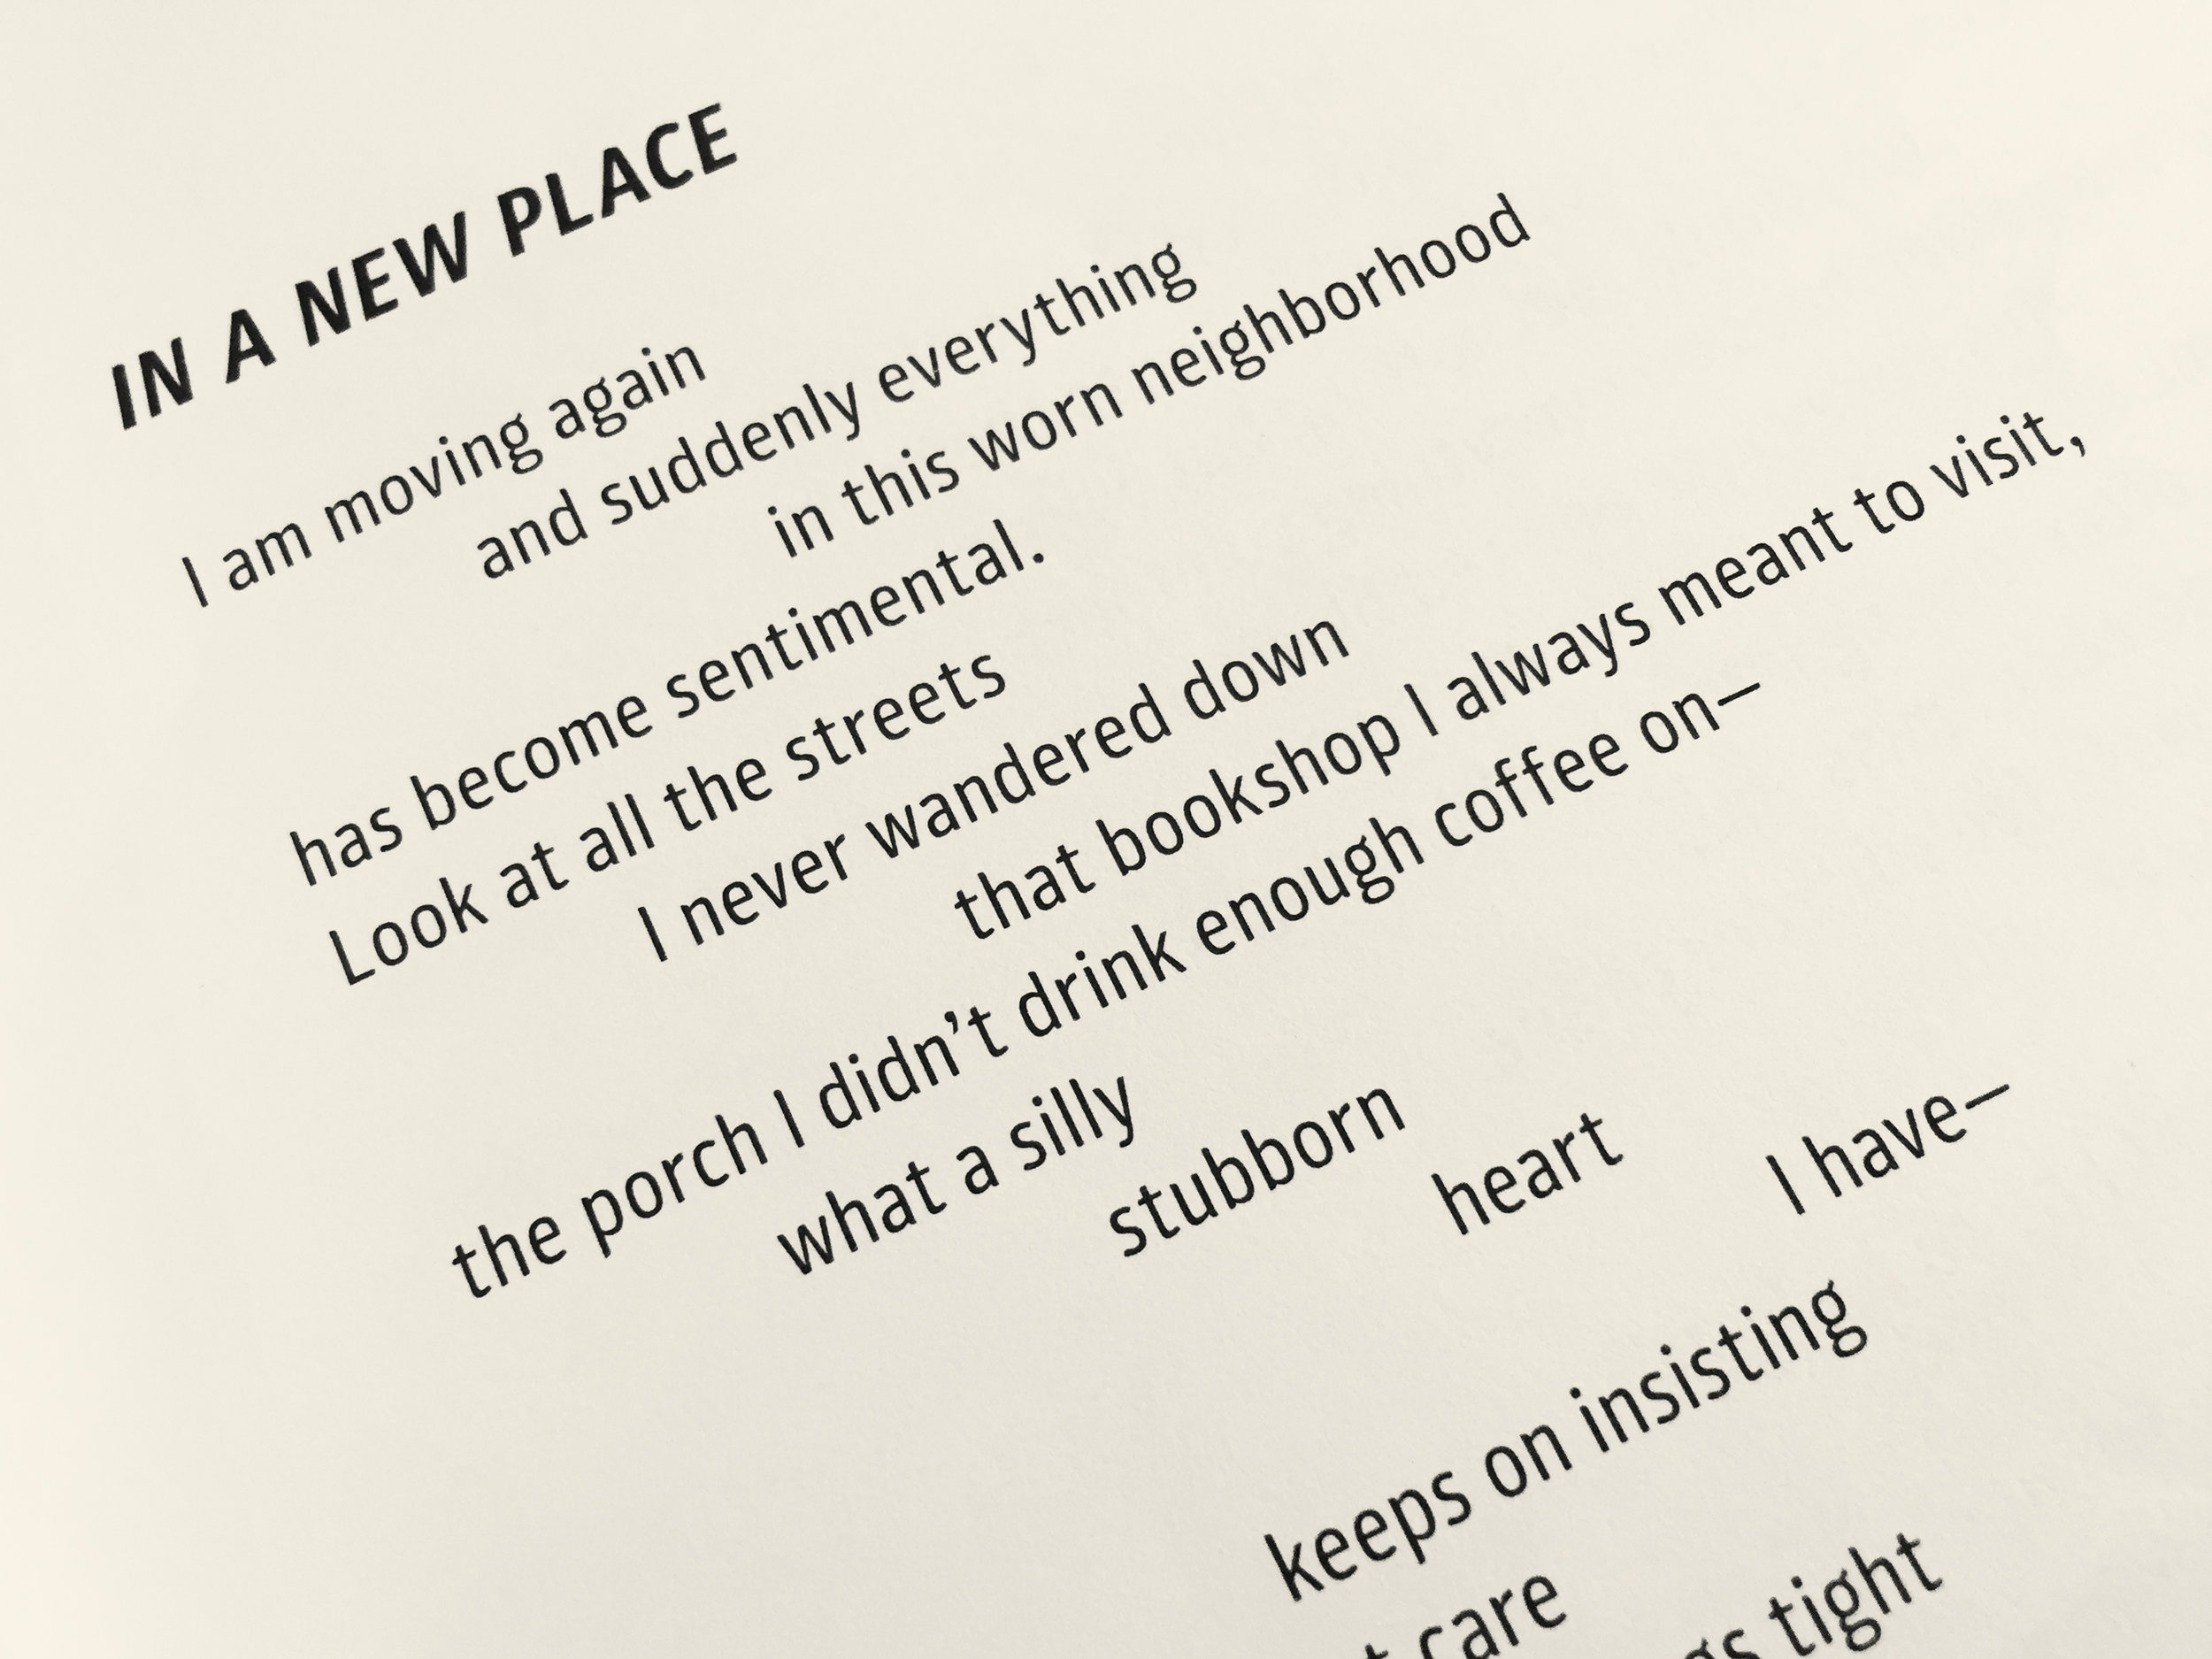 chapbook-sample1.jpg